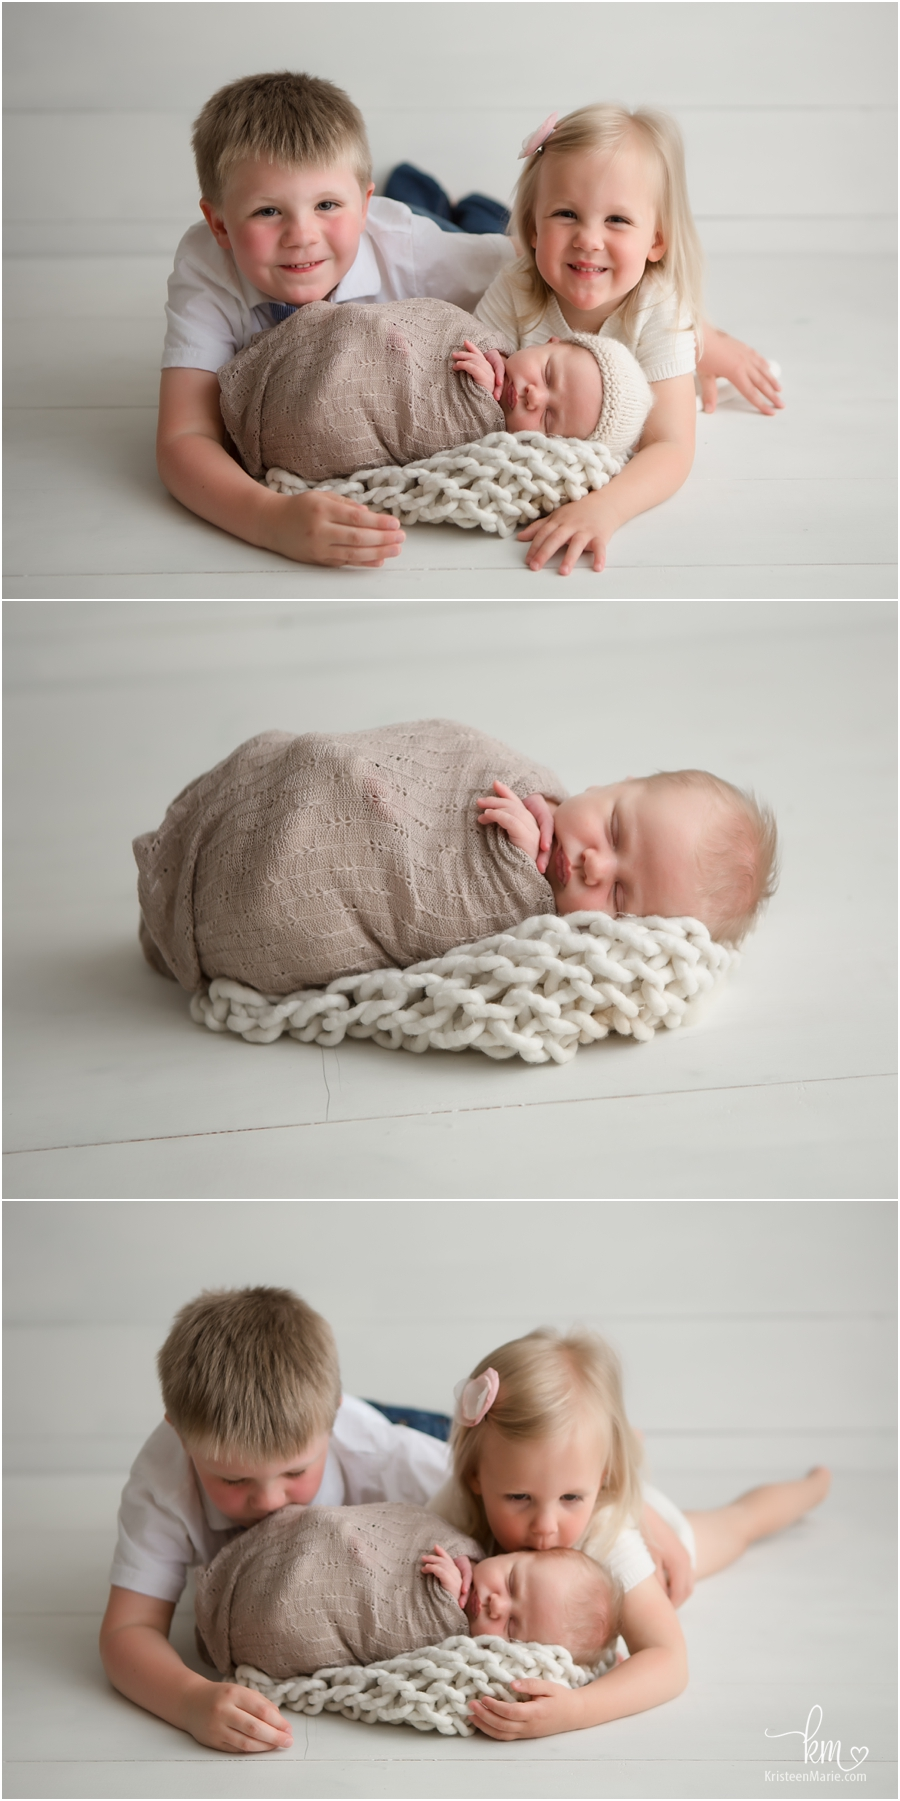 newborn baby with two siblings - siblings laying on stomach with wrapped baby pose